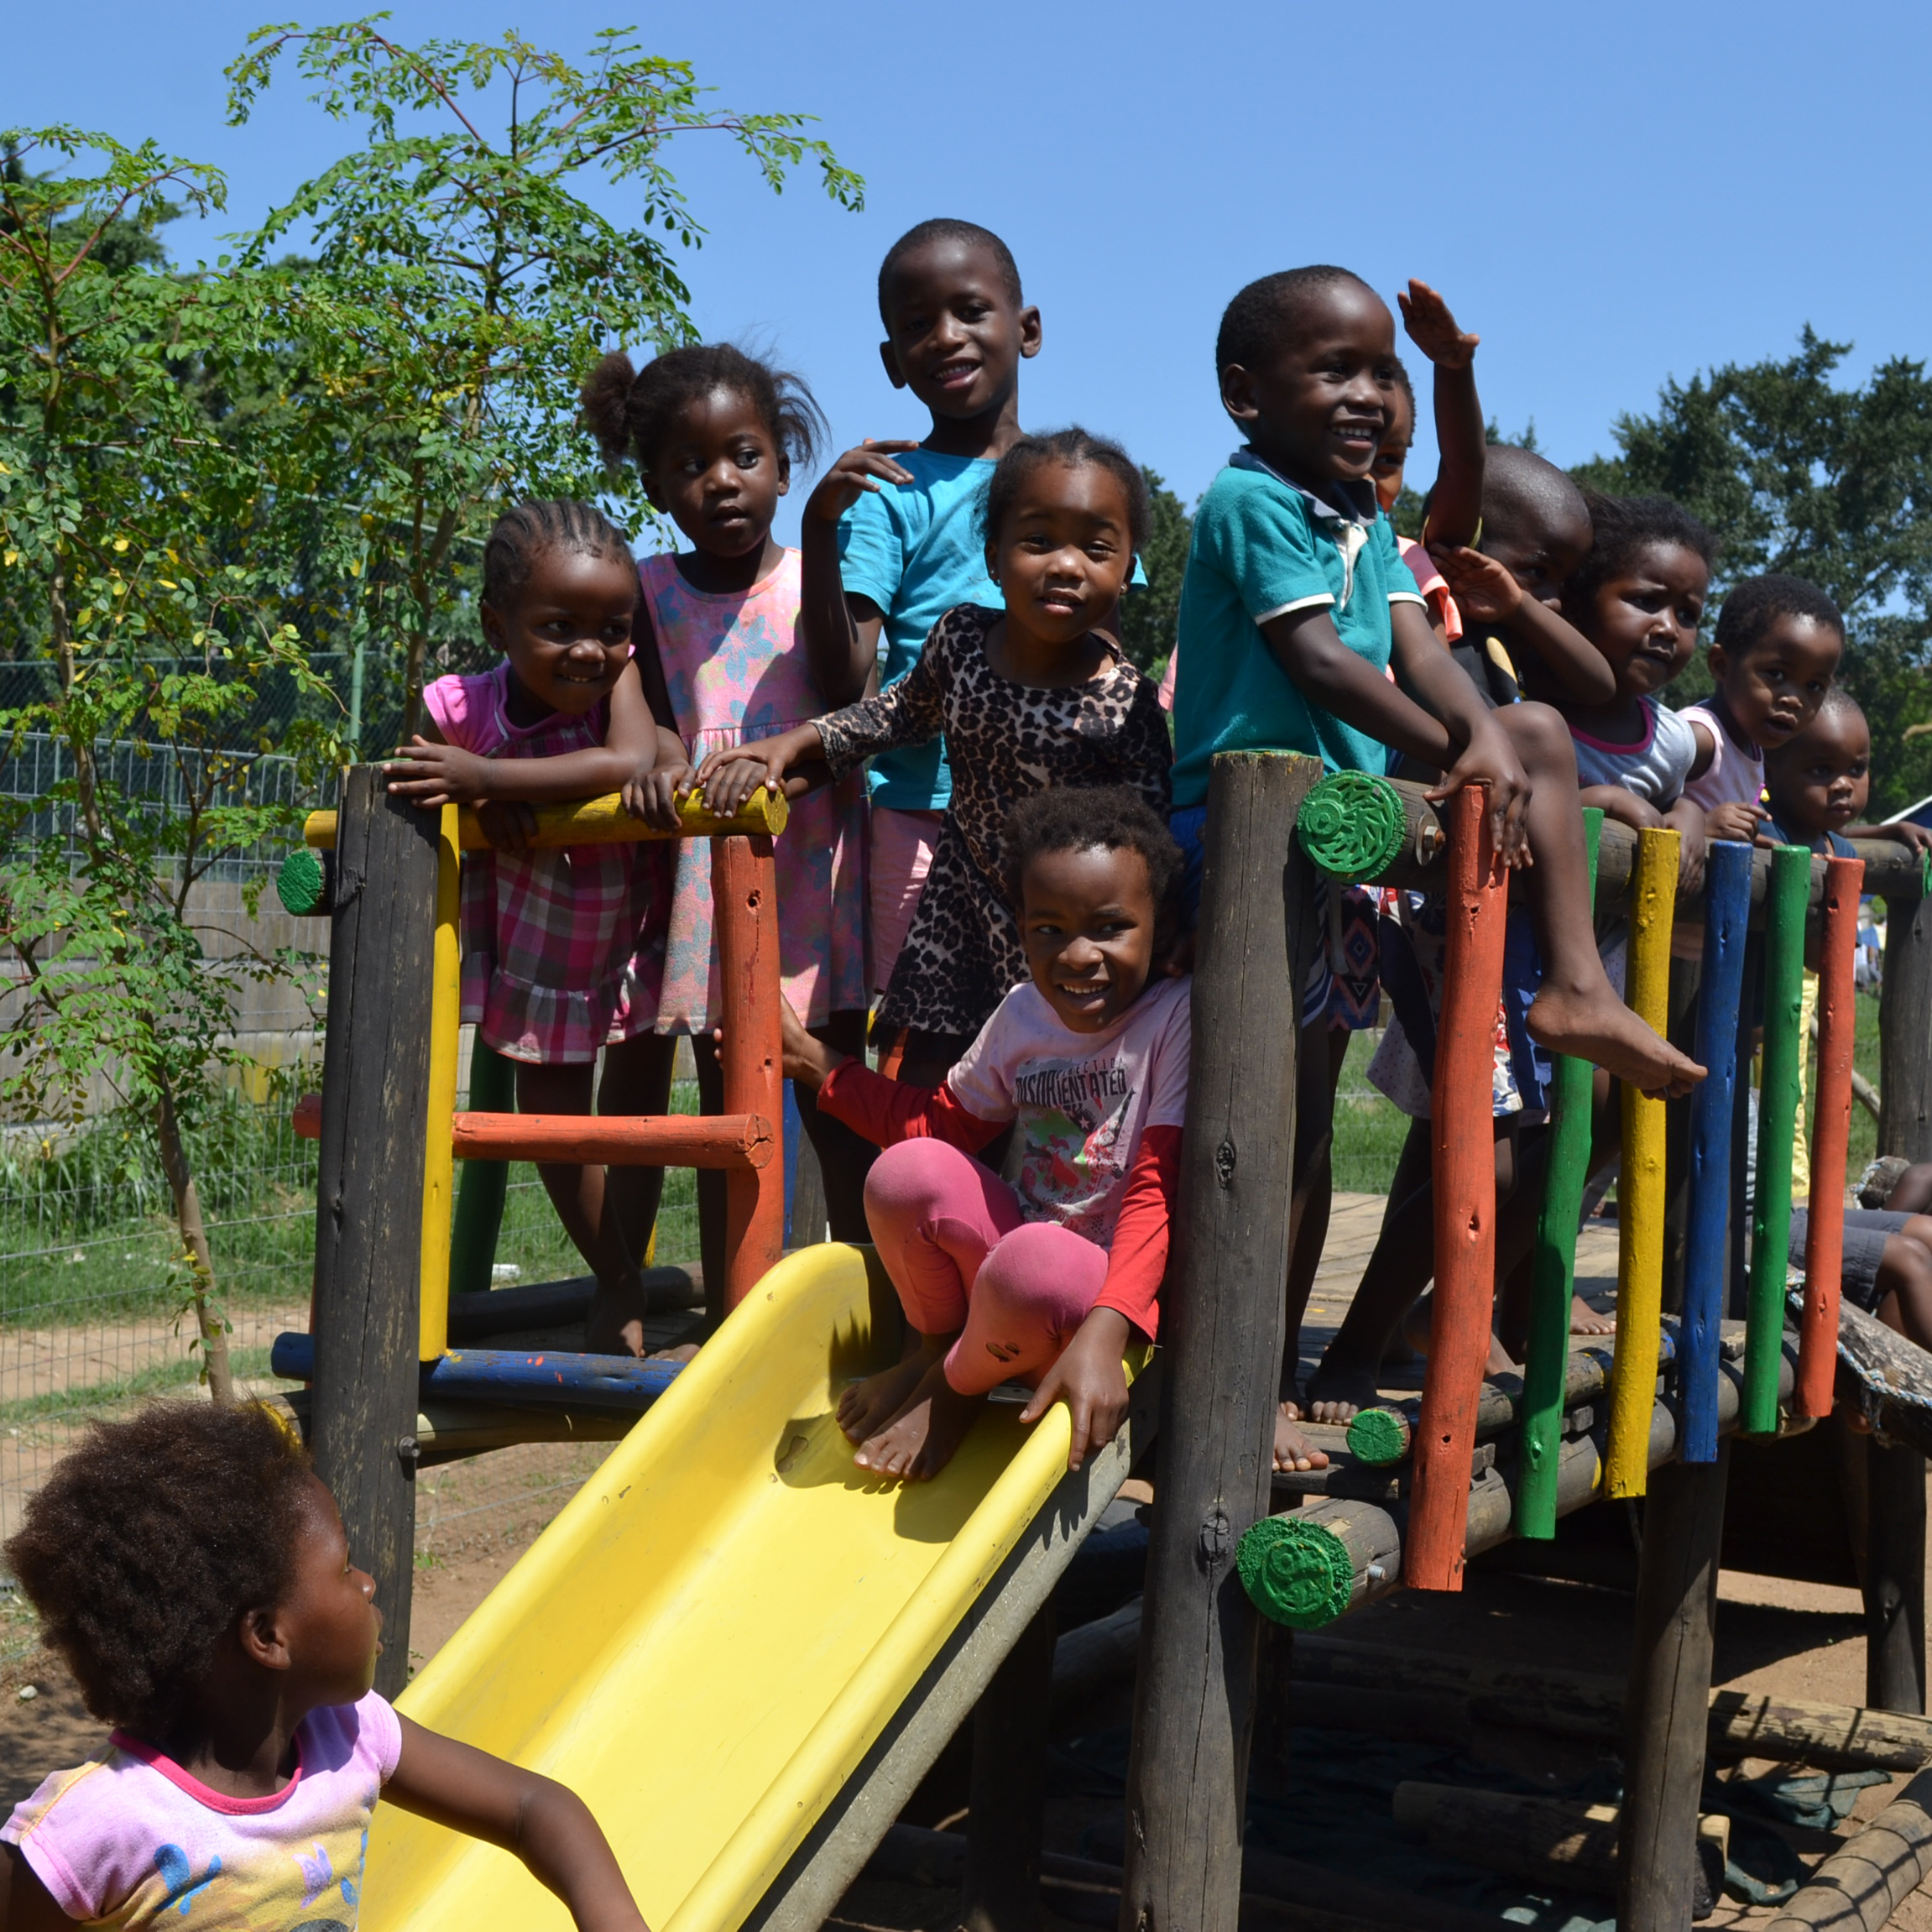 Chic mamas do care, Durban, KwaZulu-Natal, KZN, NPO, Non-profit organisation, Community, education, help